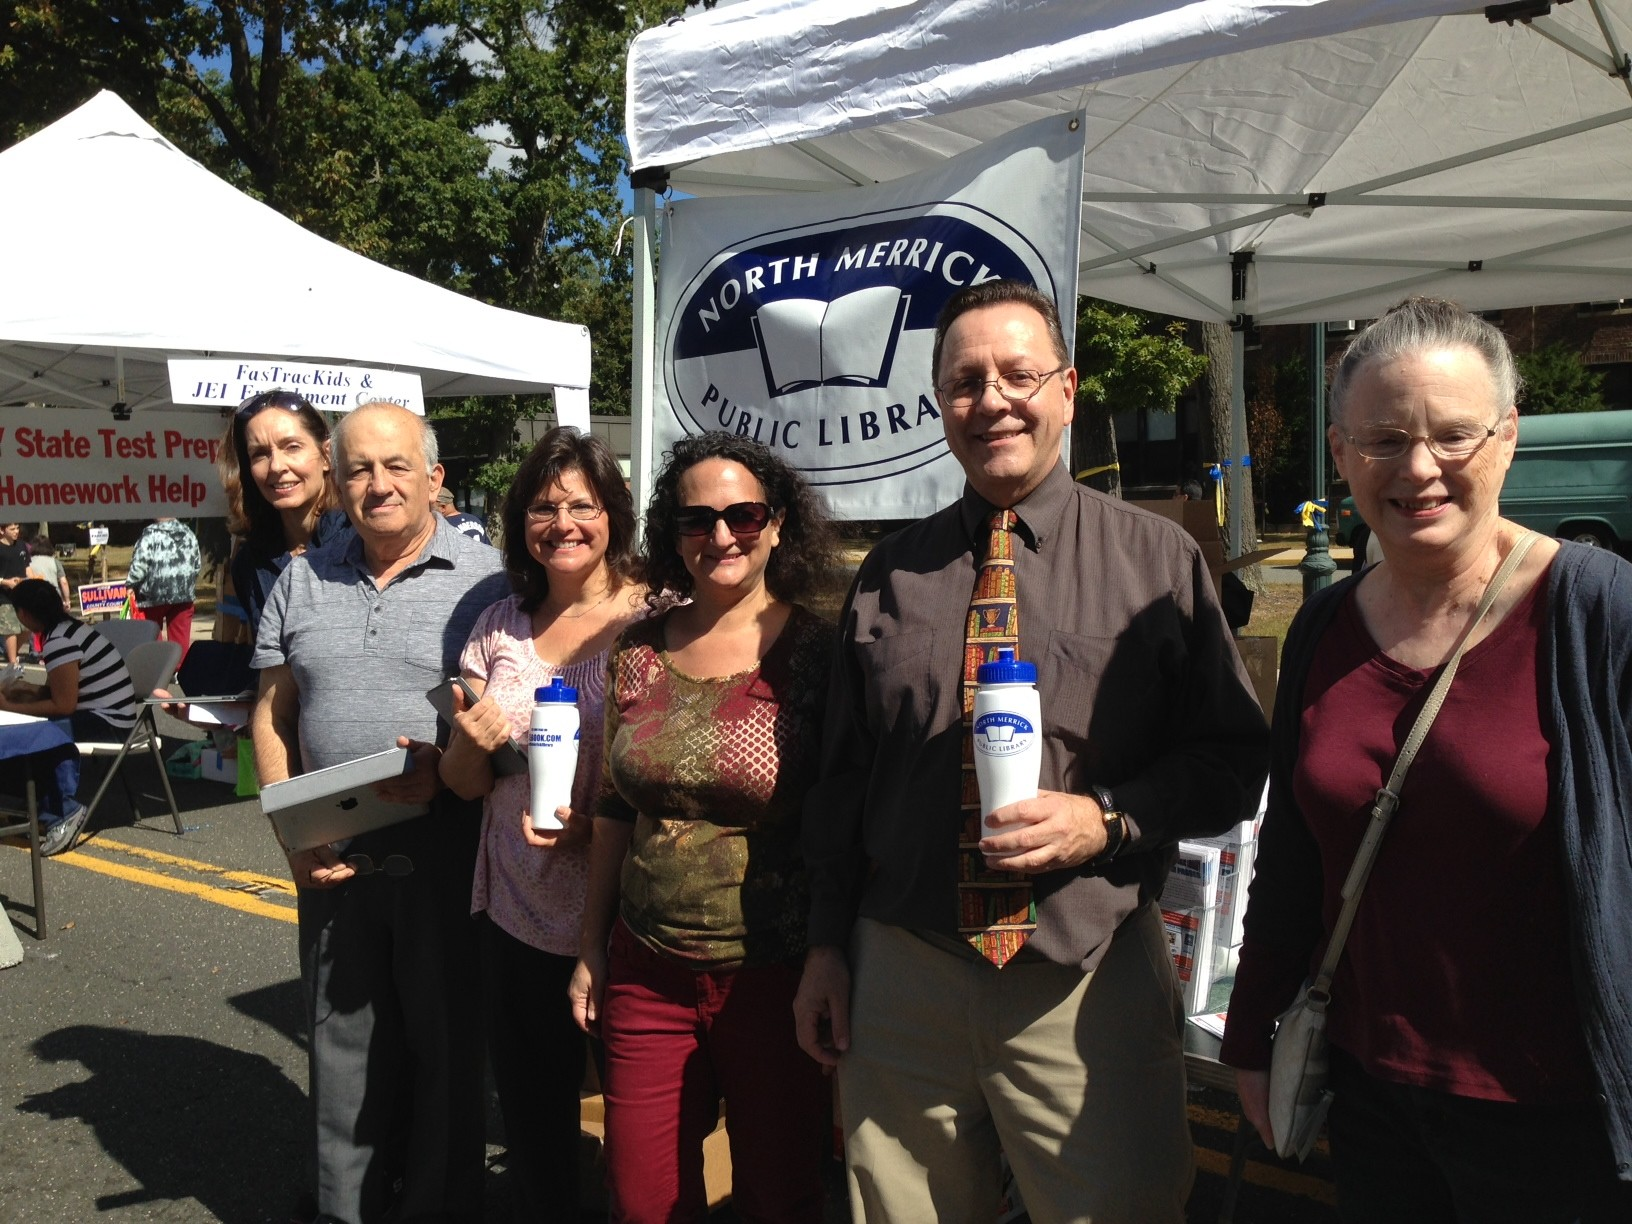 The staff of the North Merrick Public Library was on hand at the fair, including Director Tom Witt, second from right.